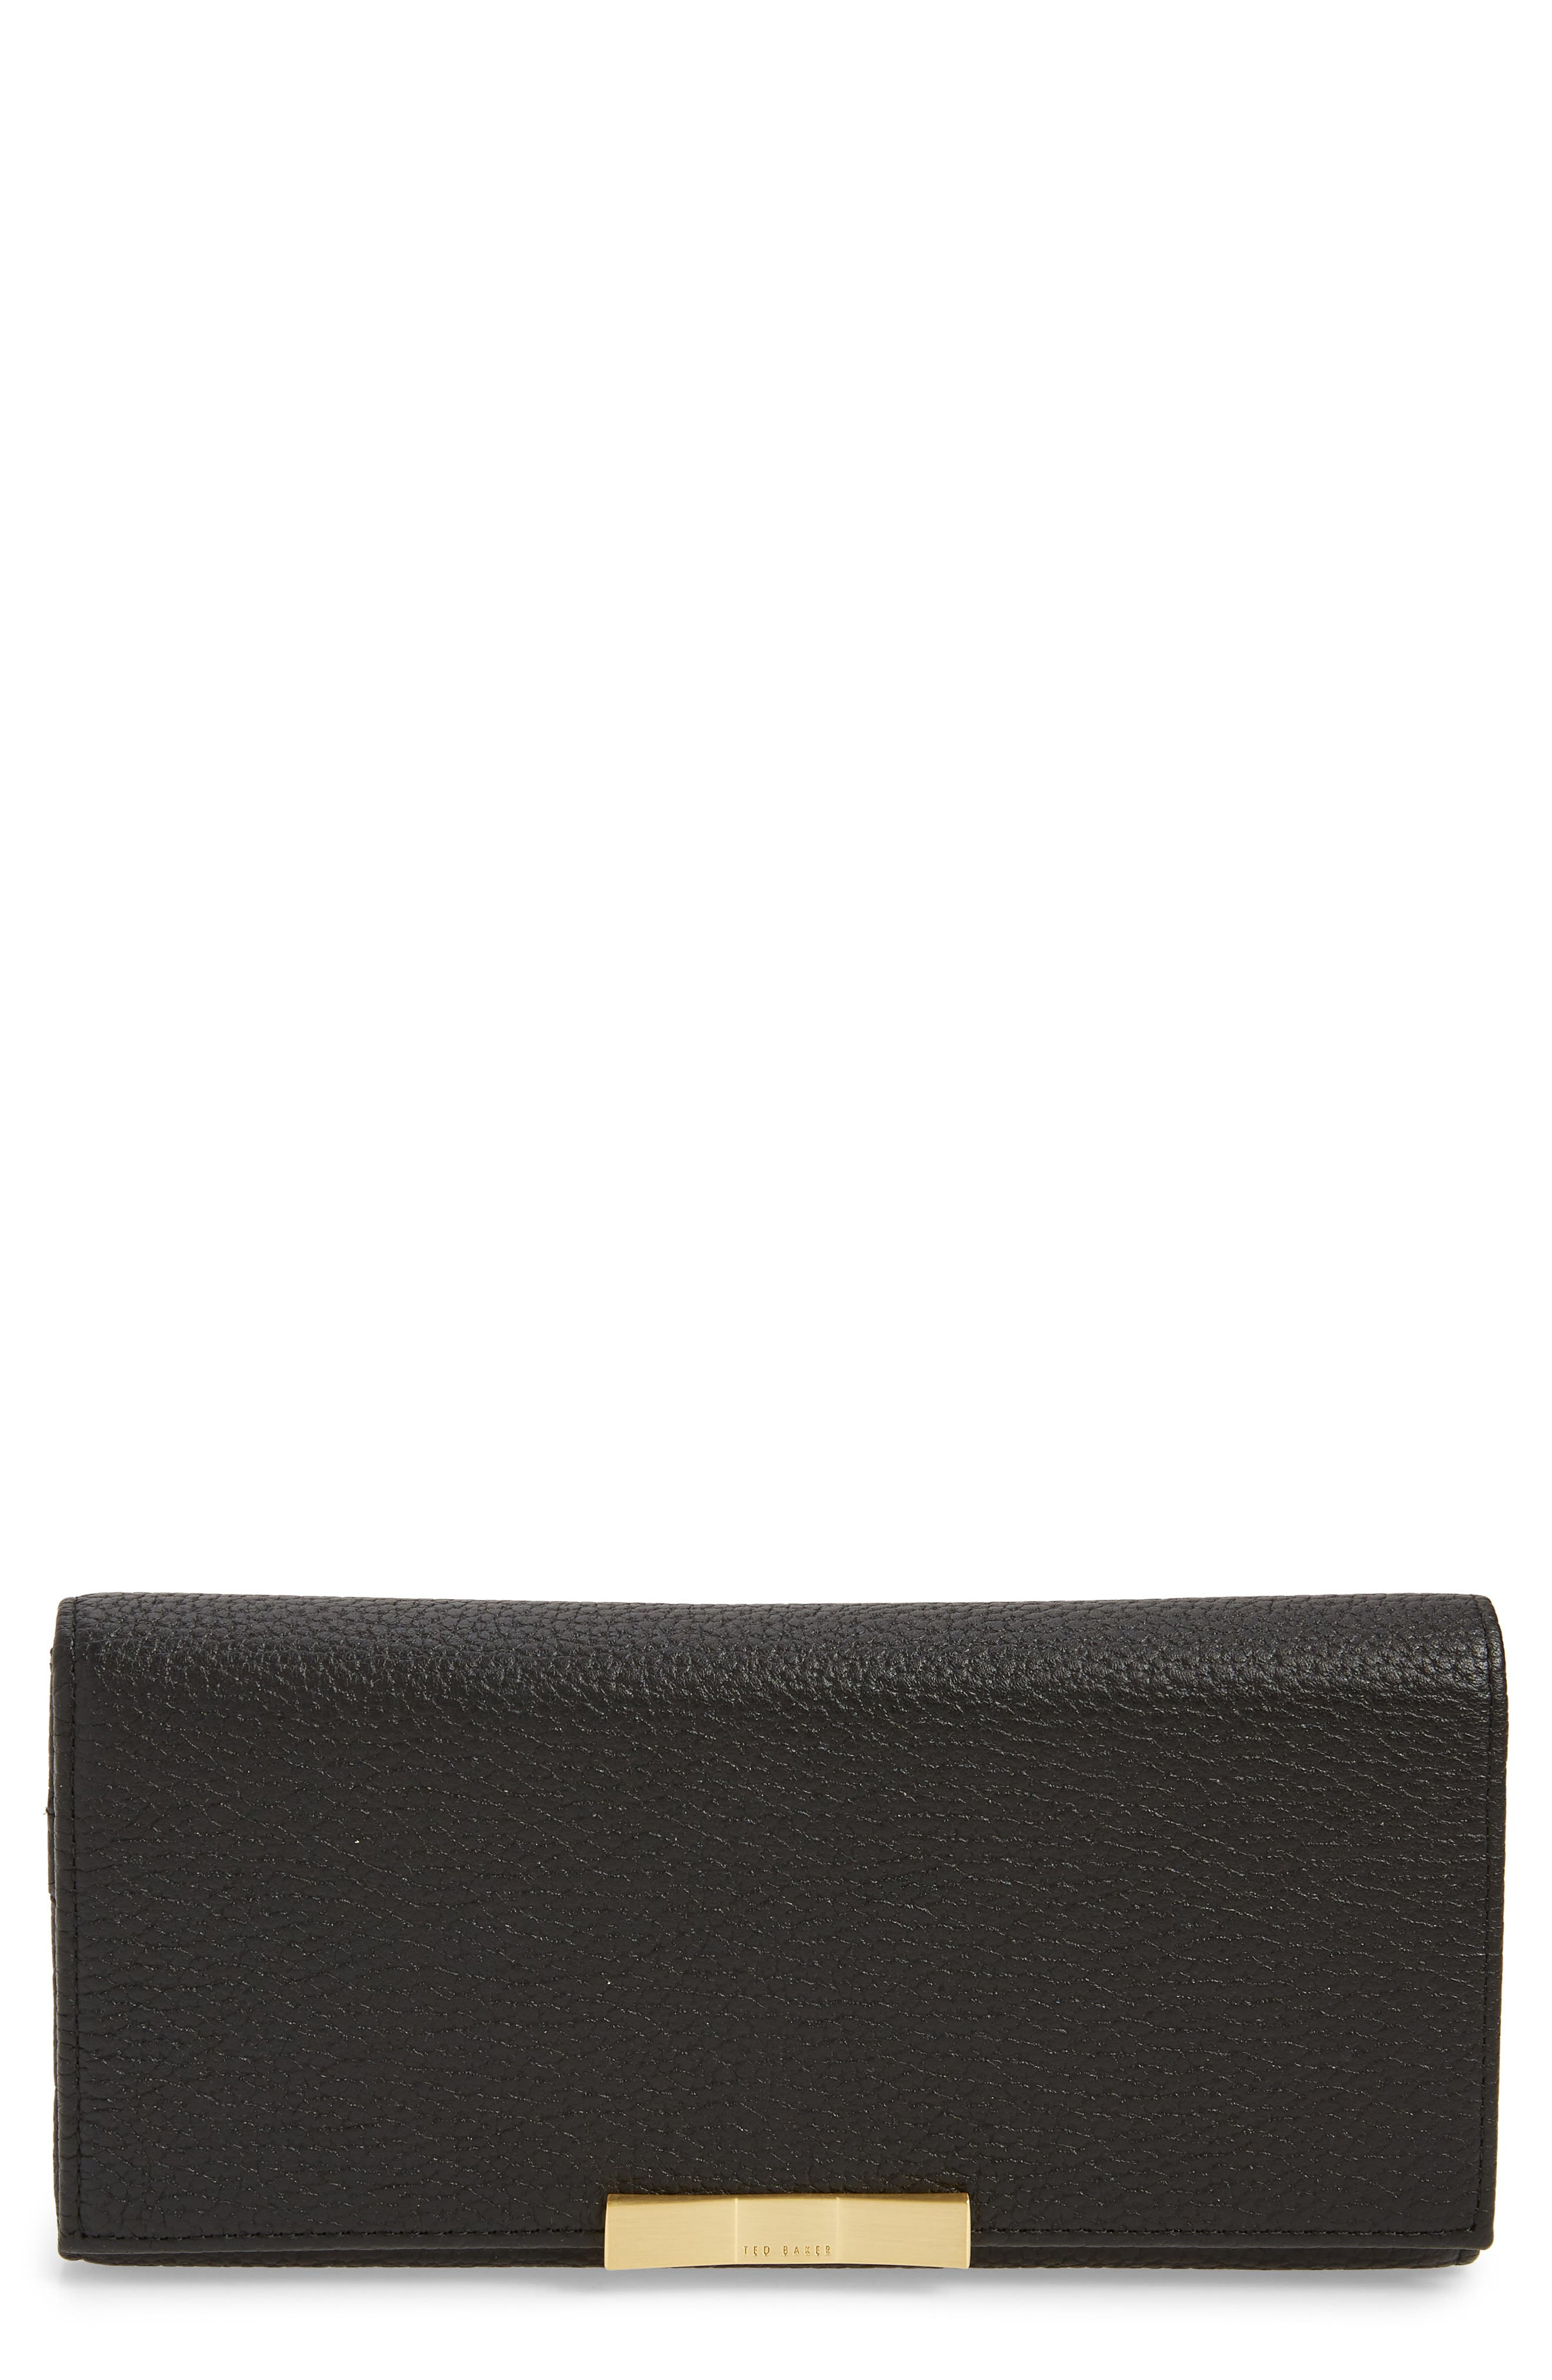 TED BAKER LONDON, Bevv Bow Leather Matinée Wallet, Main thumbnail 1, color, BLACK